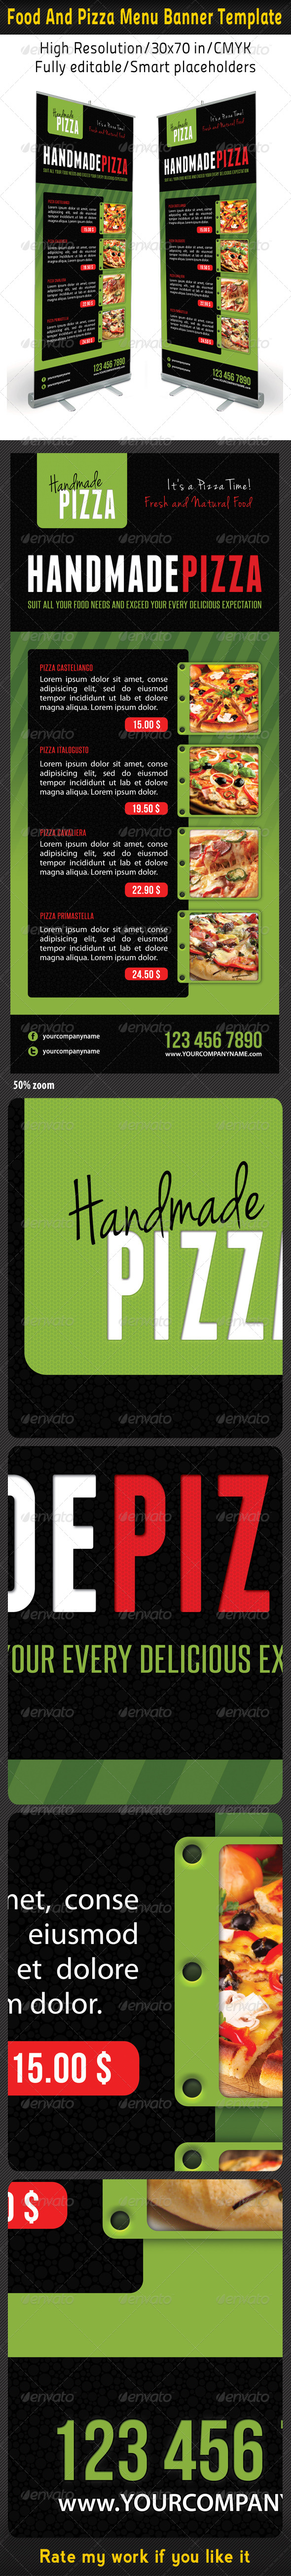 Food And Pizza Menu Banner Template 06 - Signage Print Templates